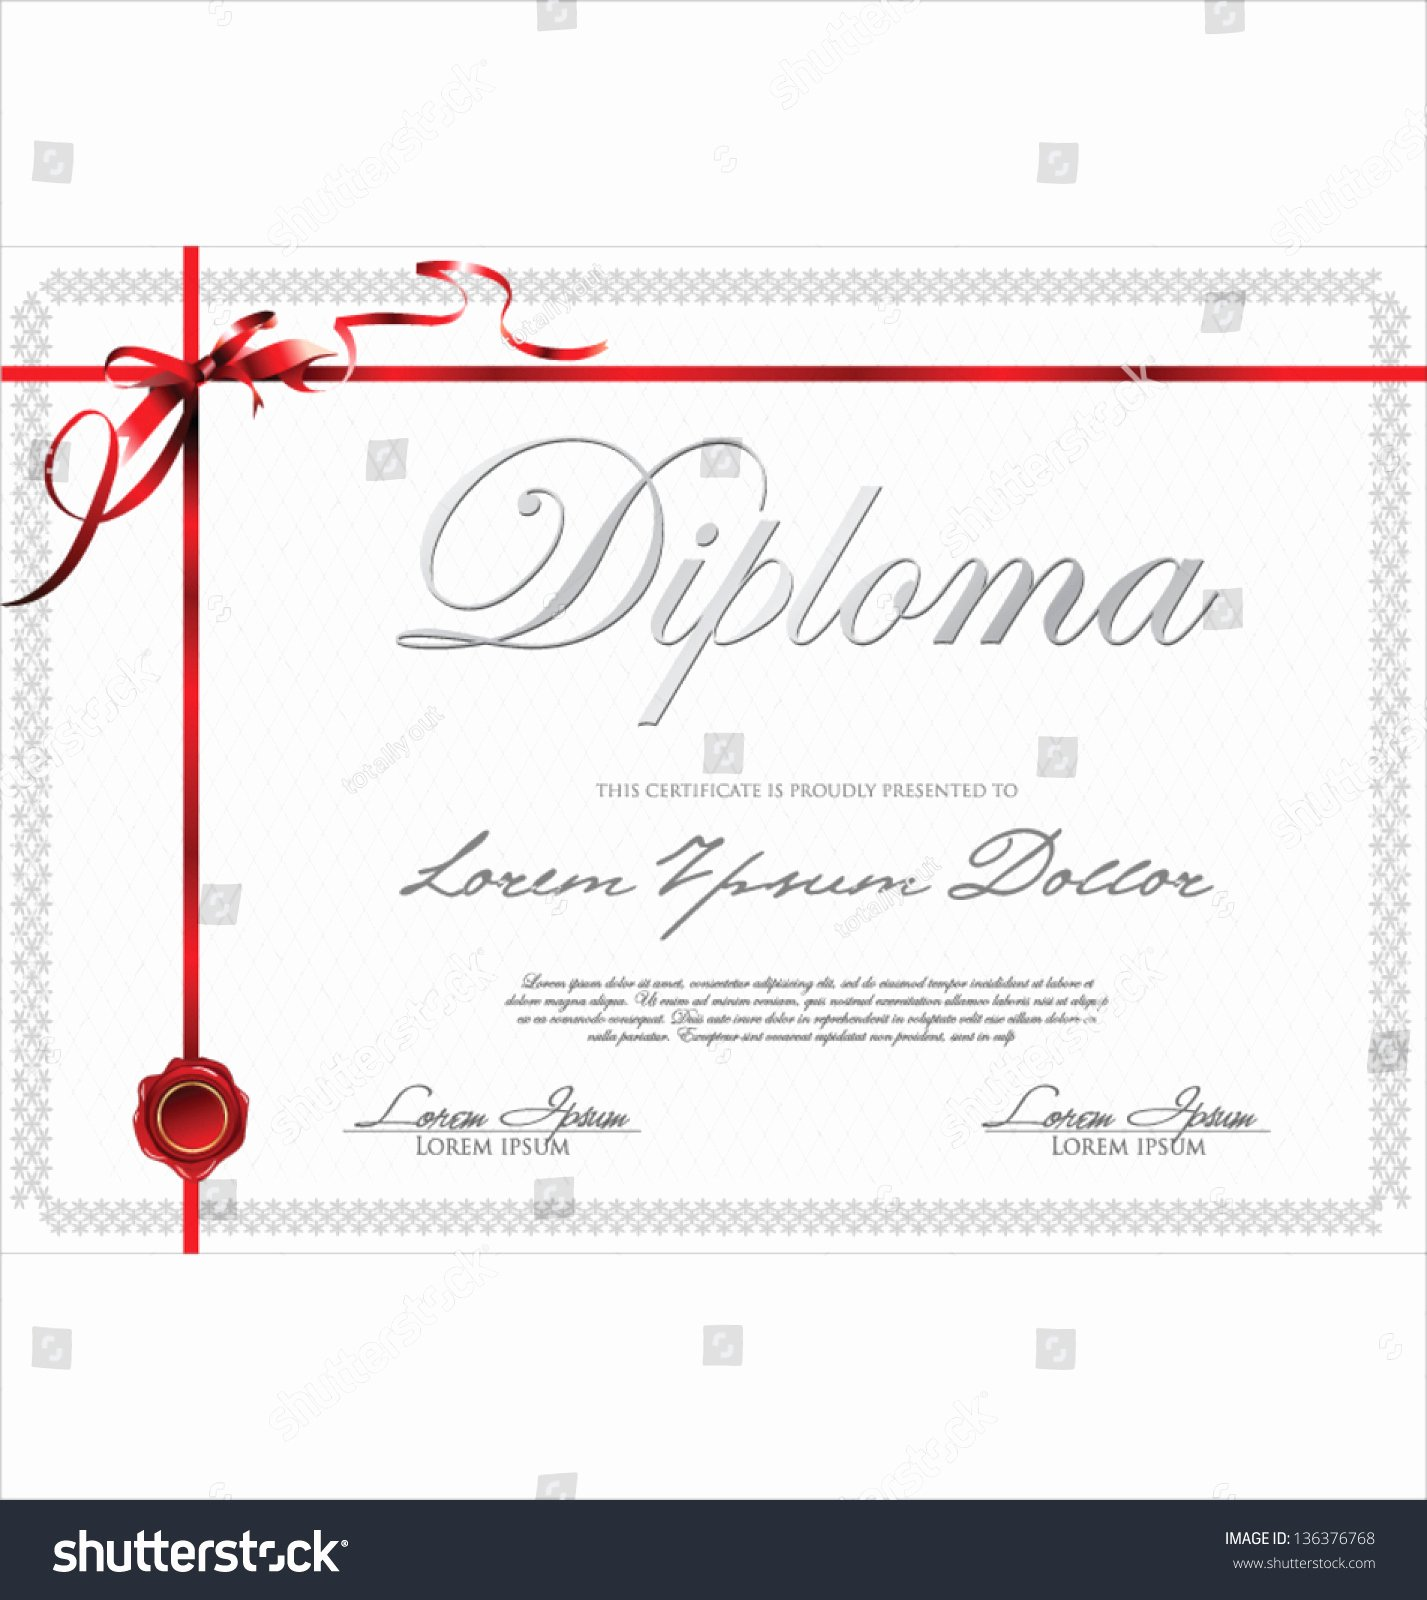 Red Ribbon Week Certificate Template Beautiful Certificate Template with Red Ribbon Stock Vector